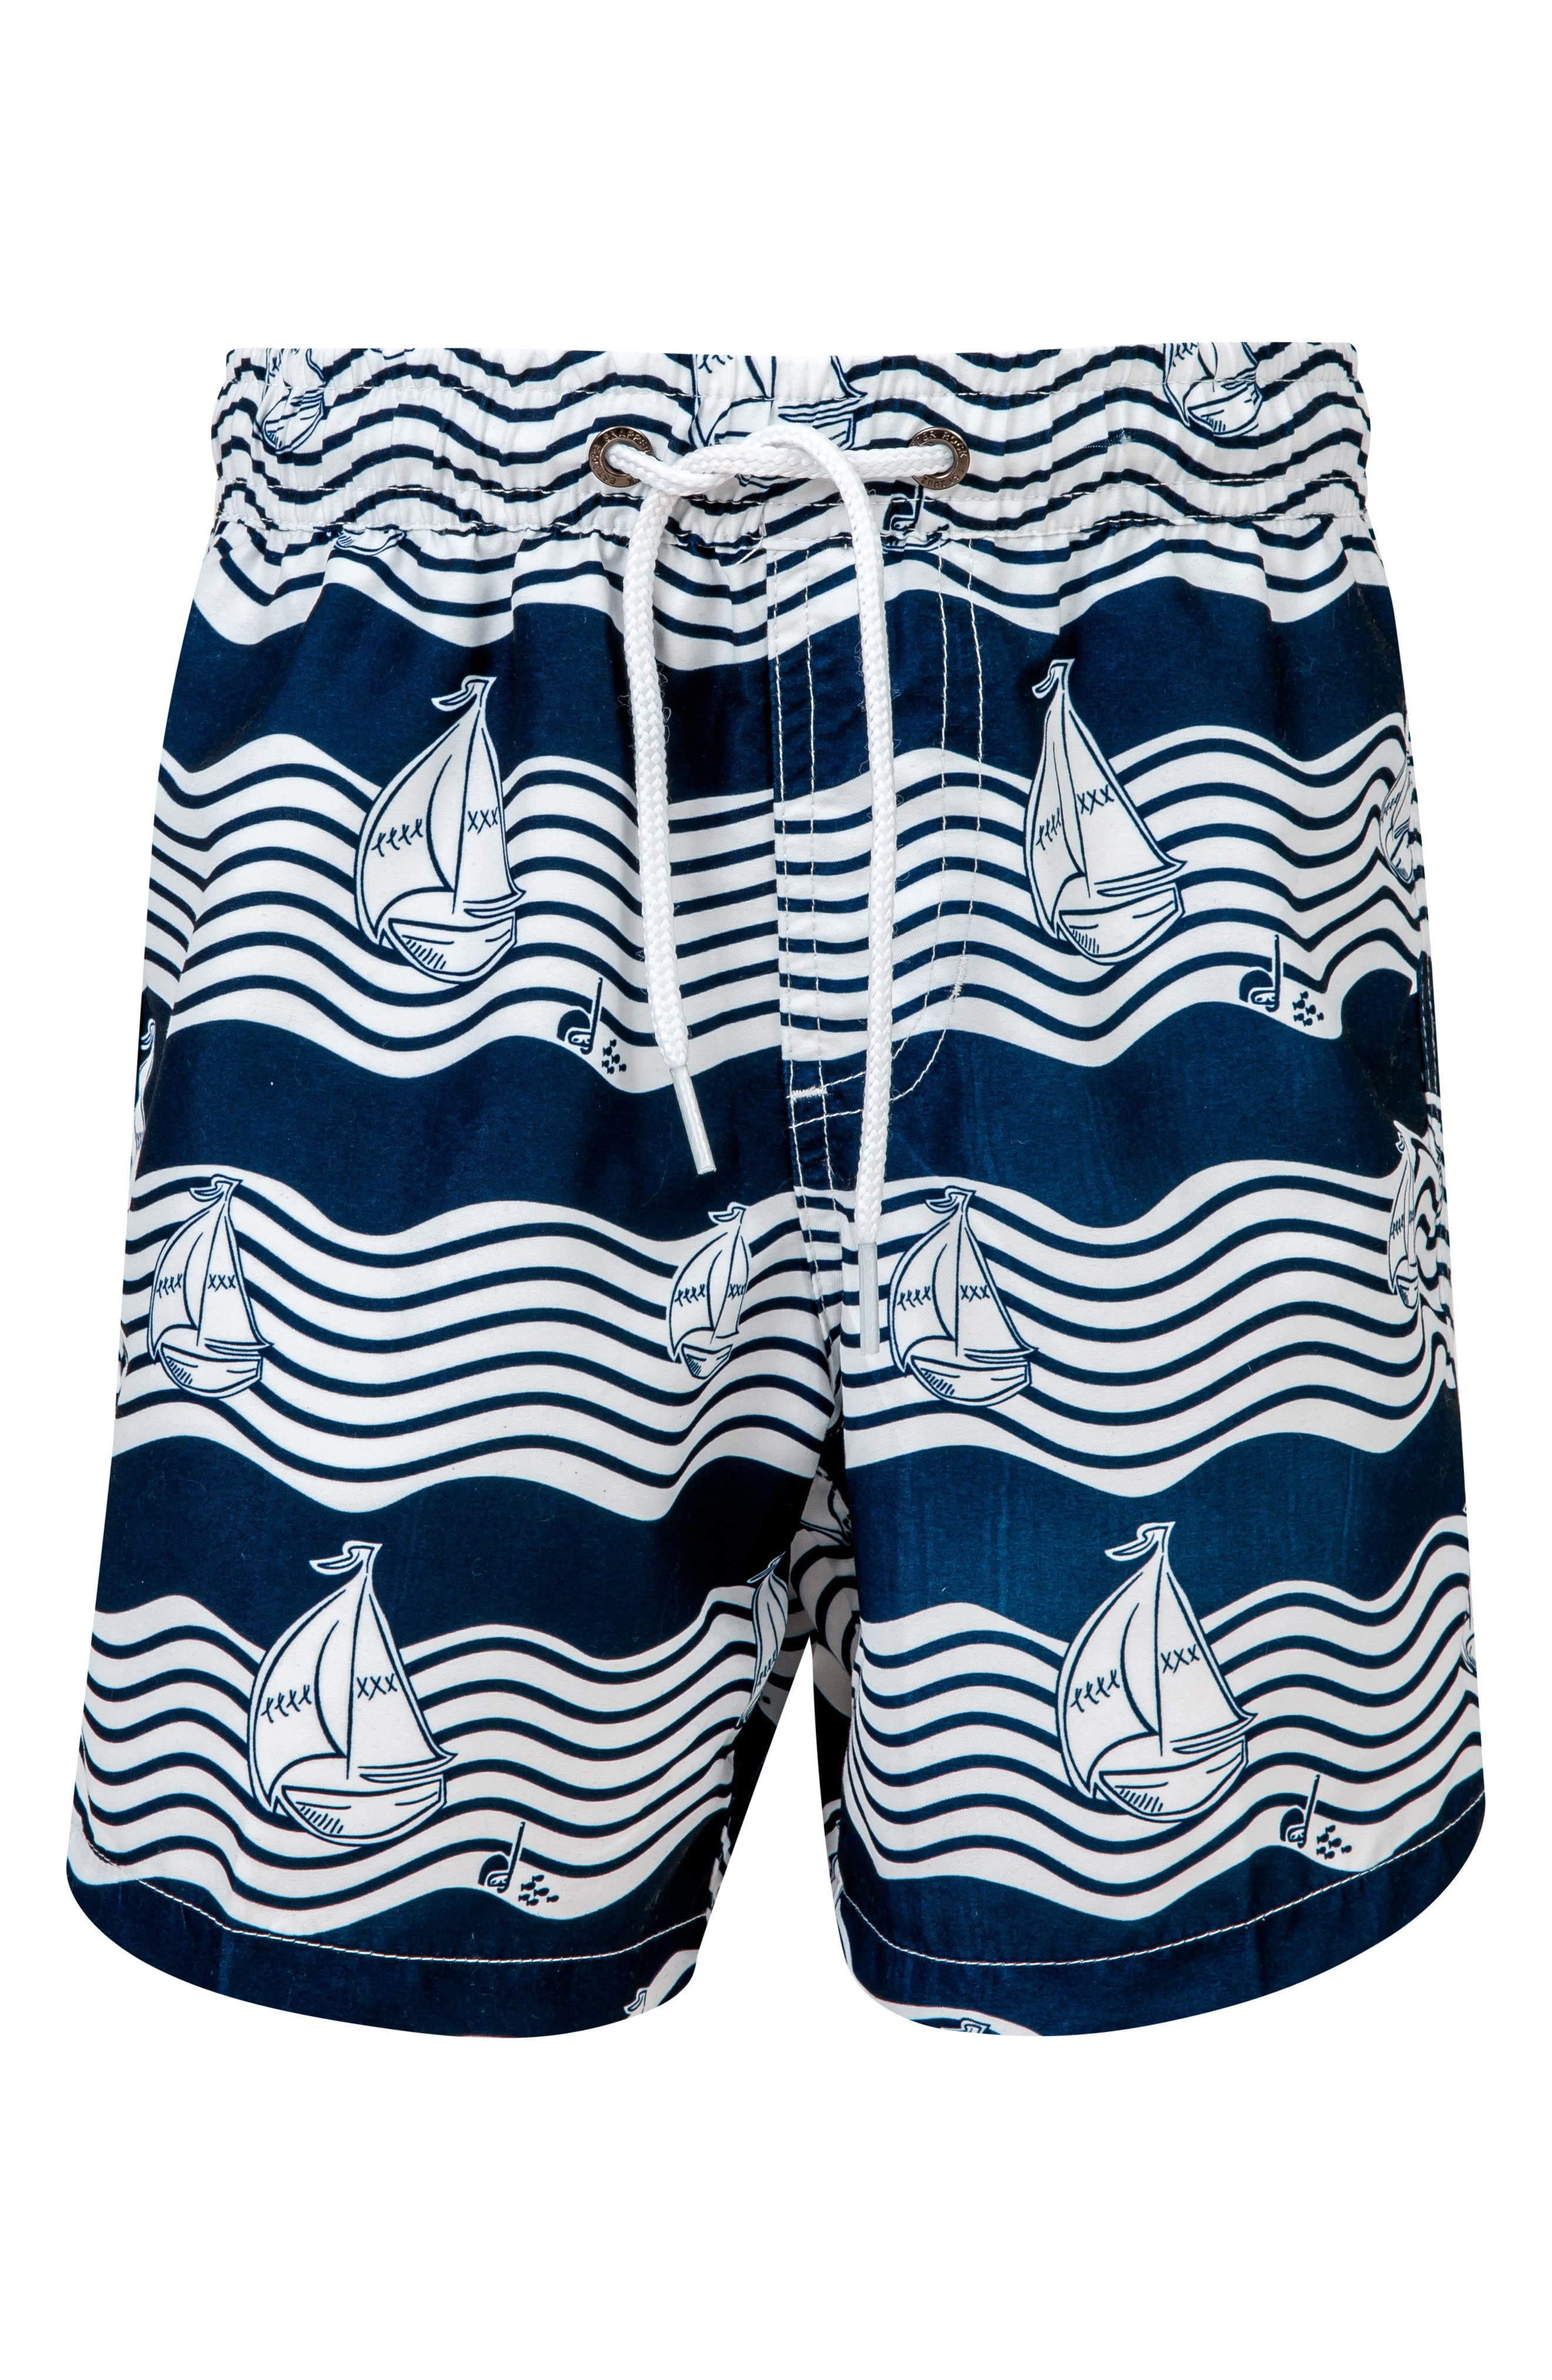 Ocean Explorer Board Shorts,                         Main,                         color,